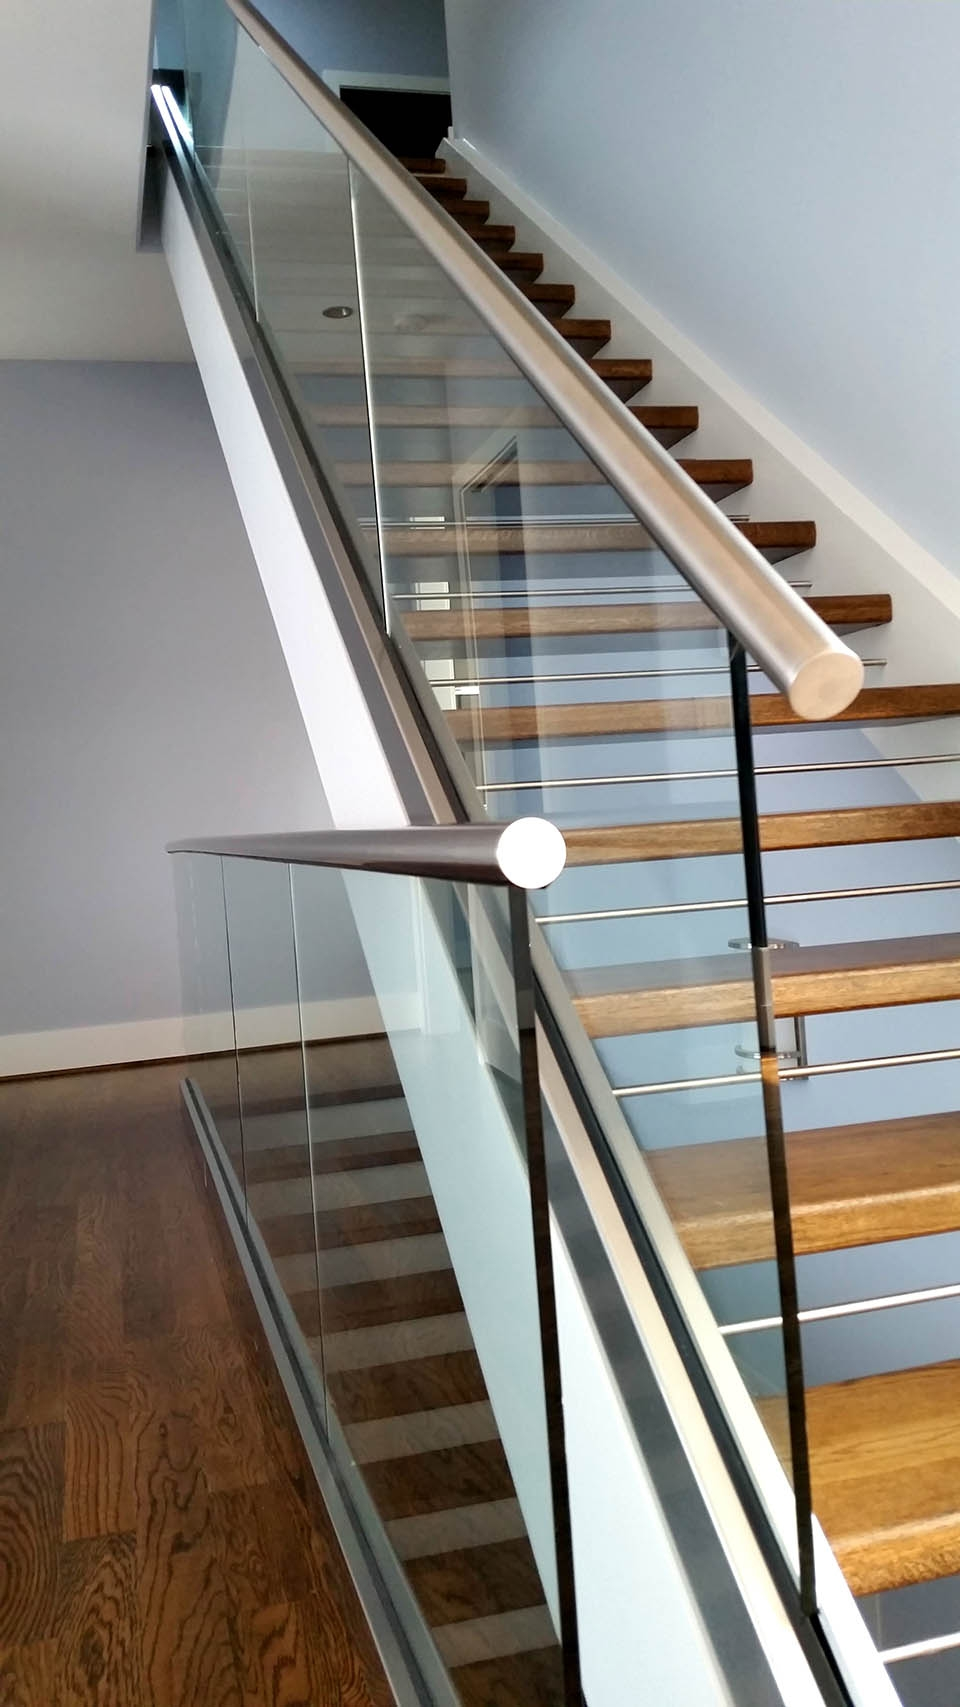 Glass Staircase Southern Staircase Artistic Stairs   Staircase Railing Designs In Wood And Glass   Frosted Glass   Low Cost   Stair Handrail   Wooden   Solid Wood